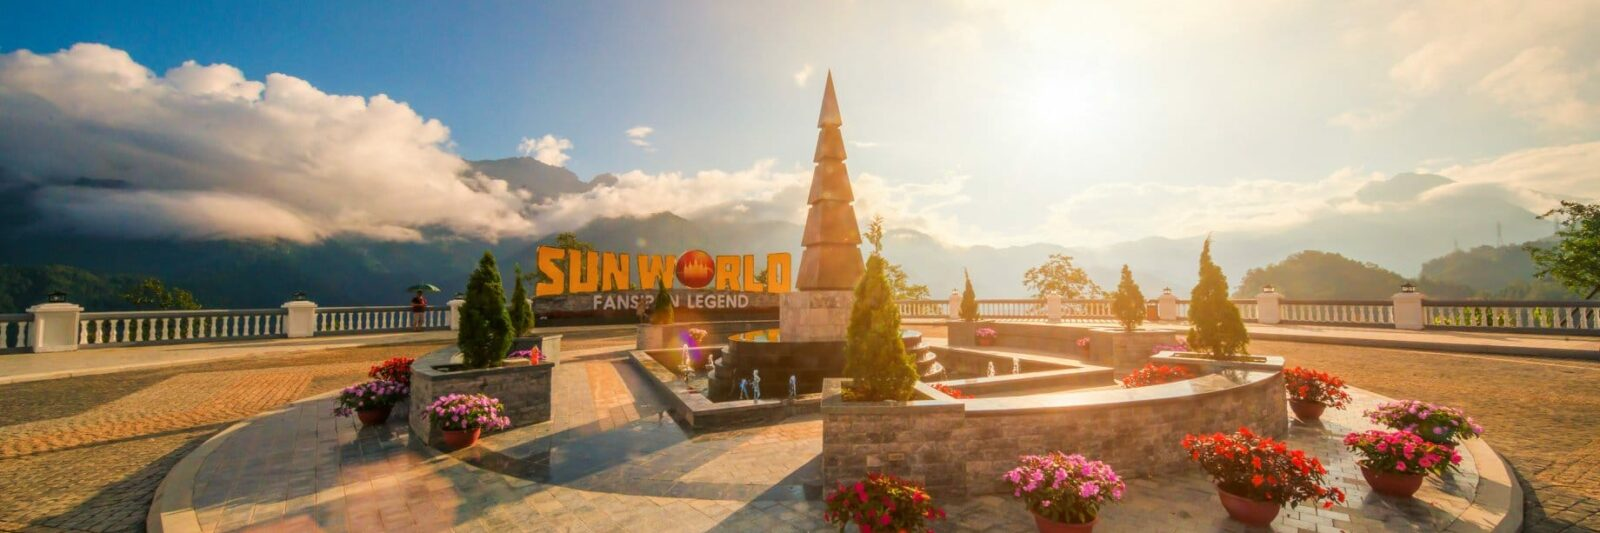 Image of the entrance sign to Sun World Fansipan Legend in Sapa, Vietnam